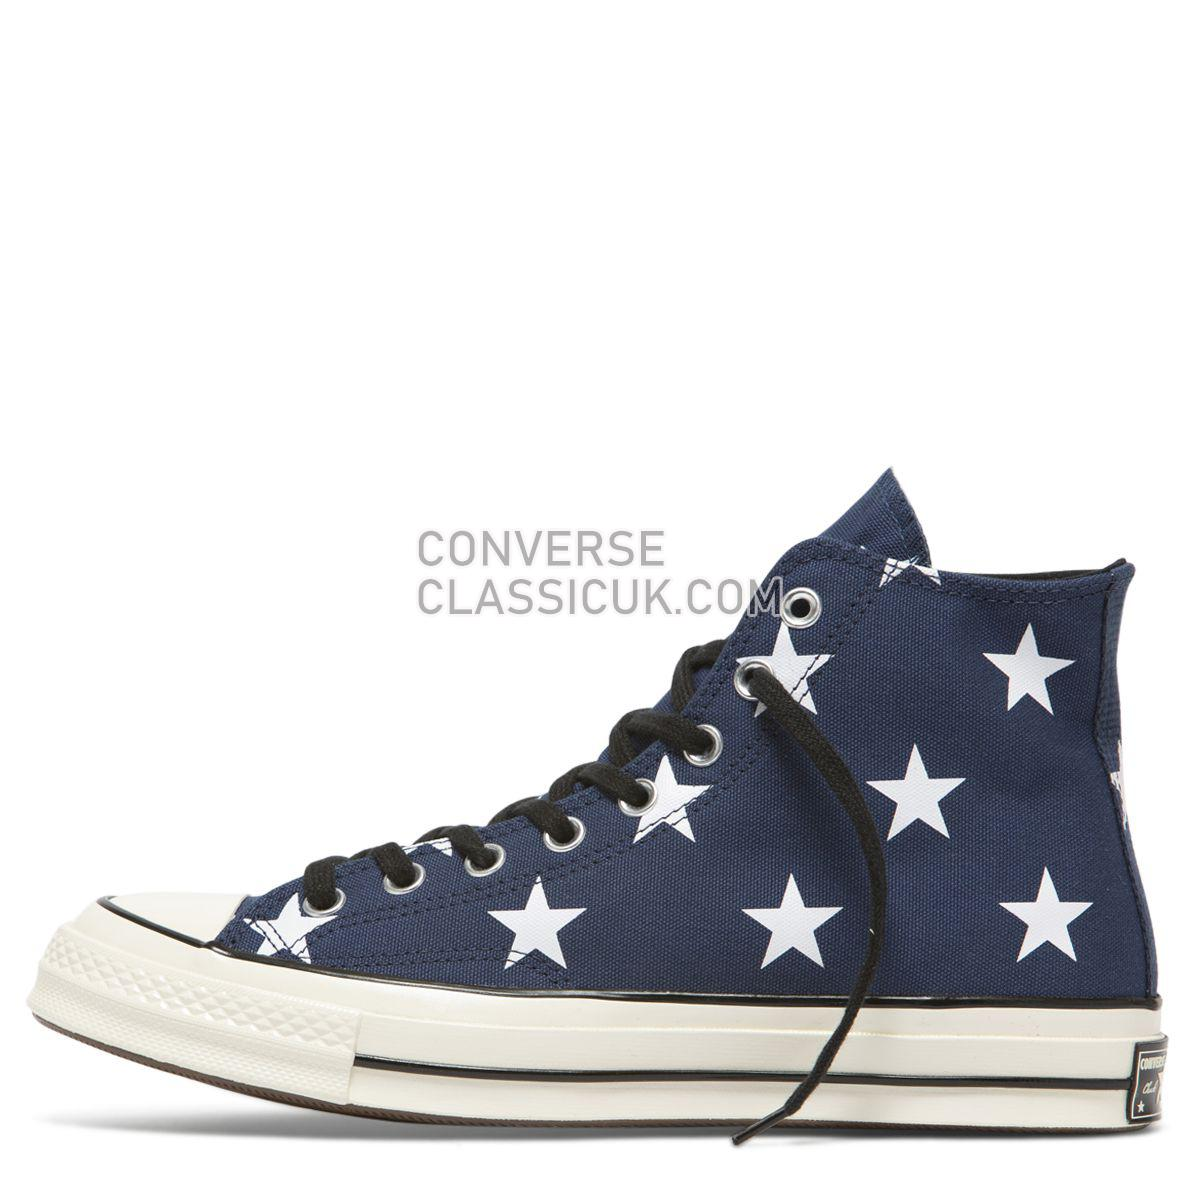 Converse Chuck Taylor All Star 70 Archive Print High Top Vintage Star Mens Womens Unisex 163409 Navy/White/Egret Shoes